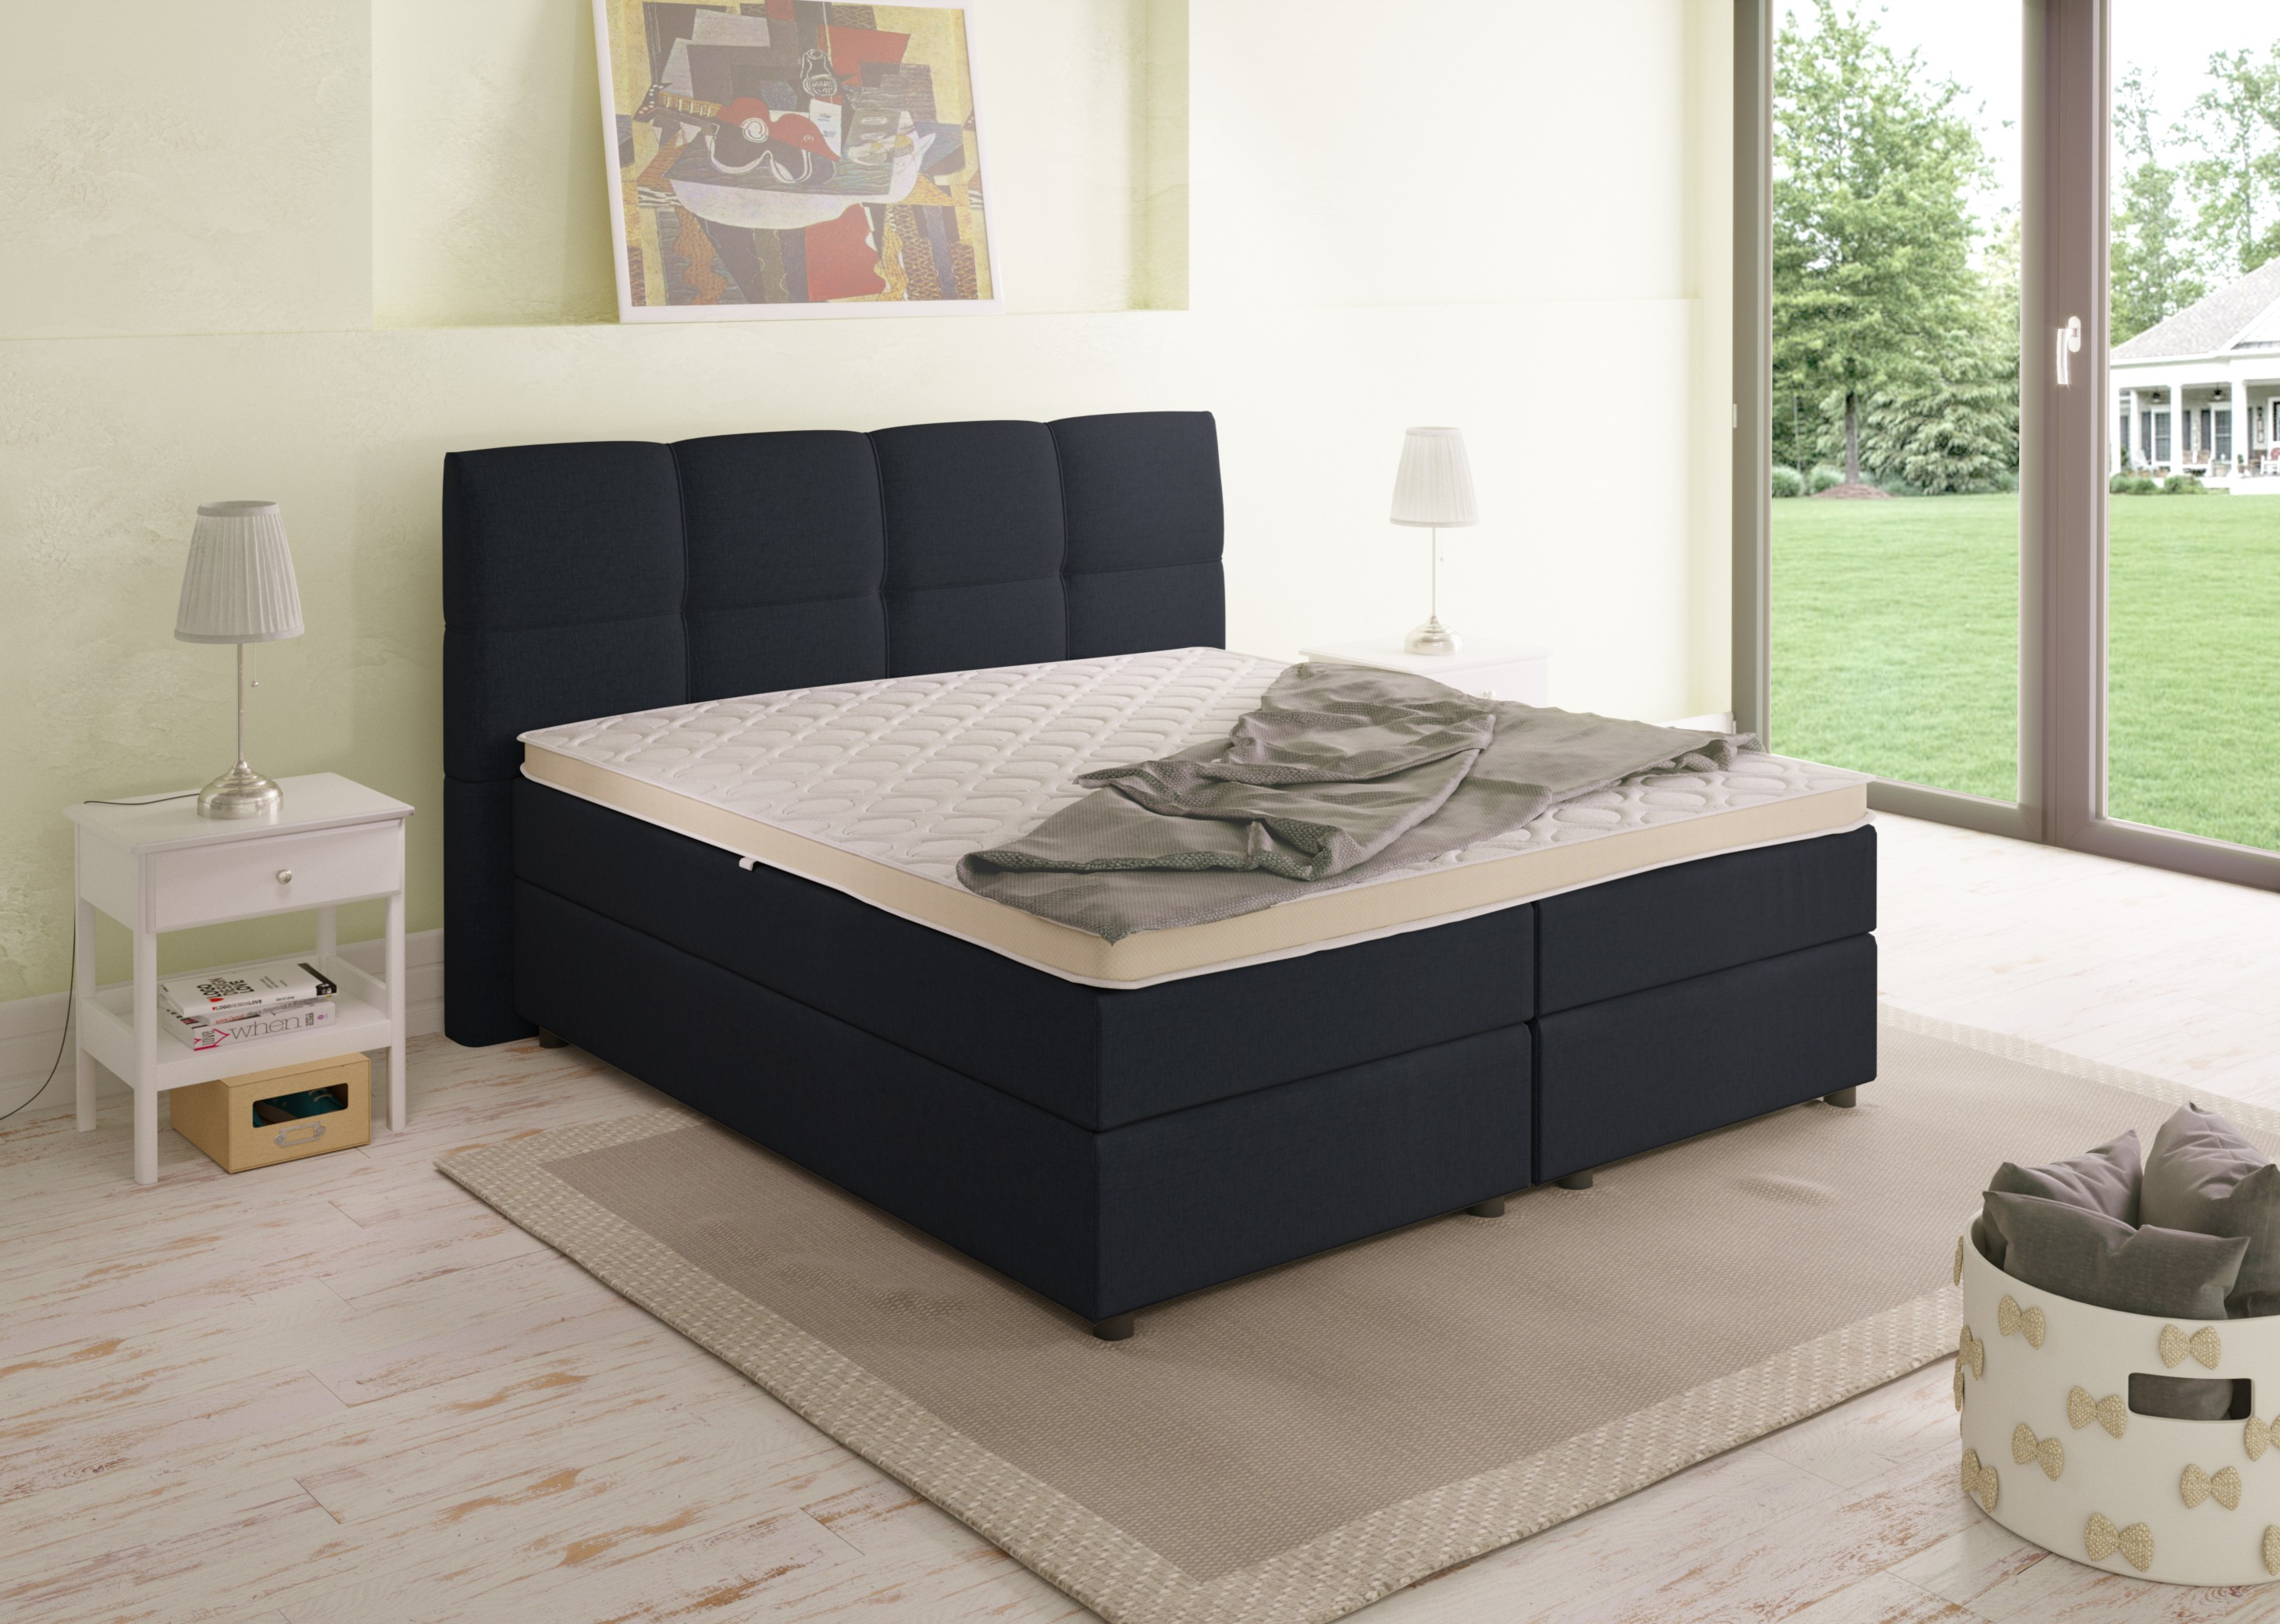 das m ssen sie unbedingt beachten wenn sie ein boxspringbett online kaufen fresh ideen f r. Black Bedroom Furniture Sets. Home Design Ideas